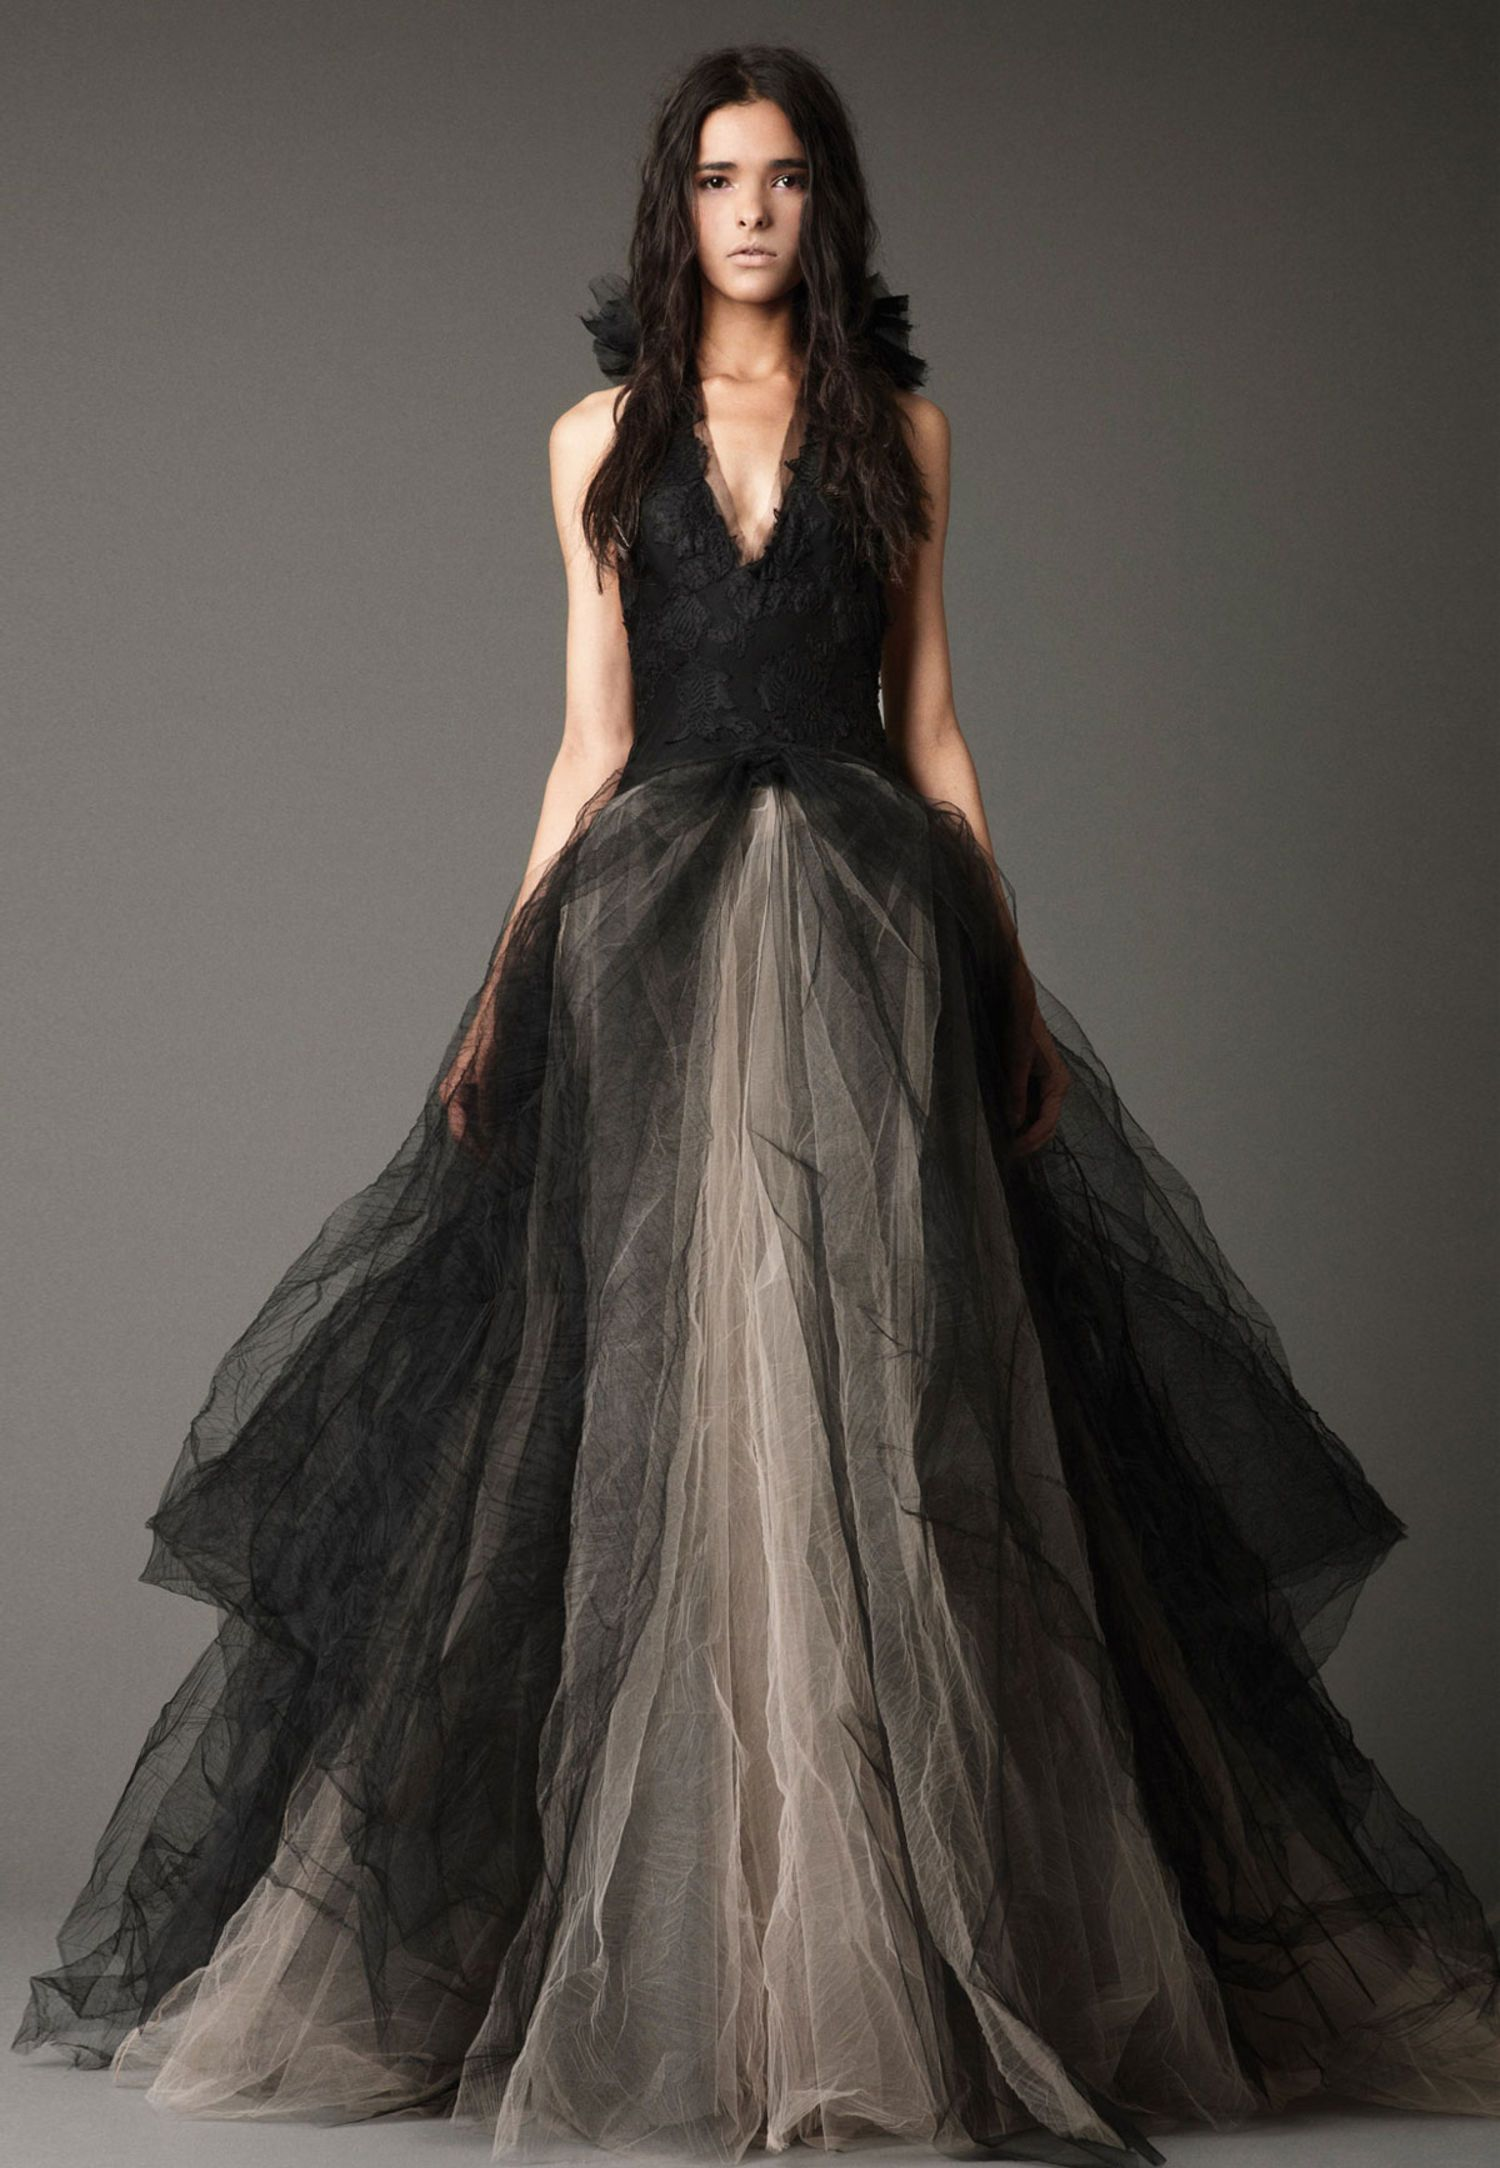 Great Shenae Grimes u Wedding Dress The Bride Wore One of the BLACK Vera Wang Gowns uand It Looked AWESOME on Her